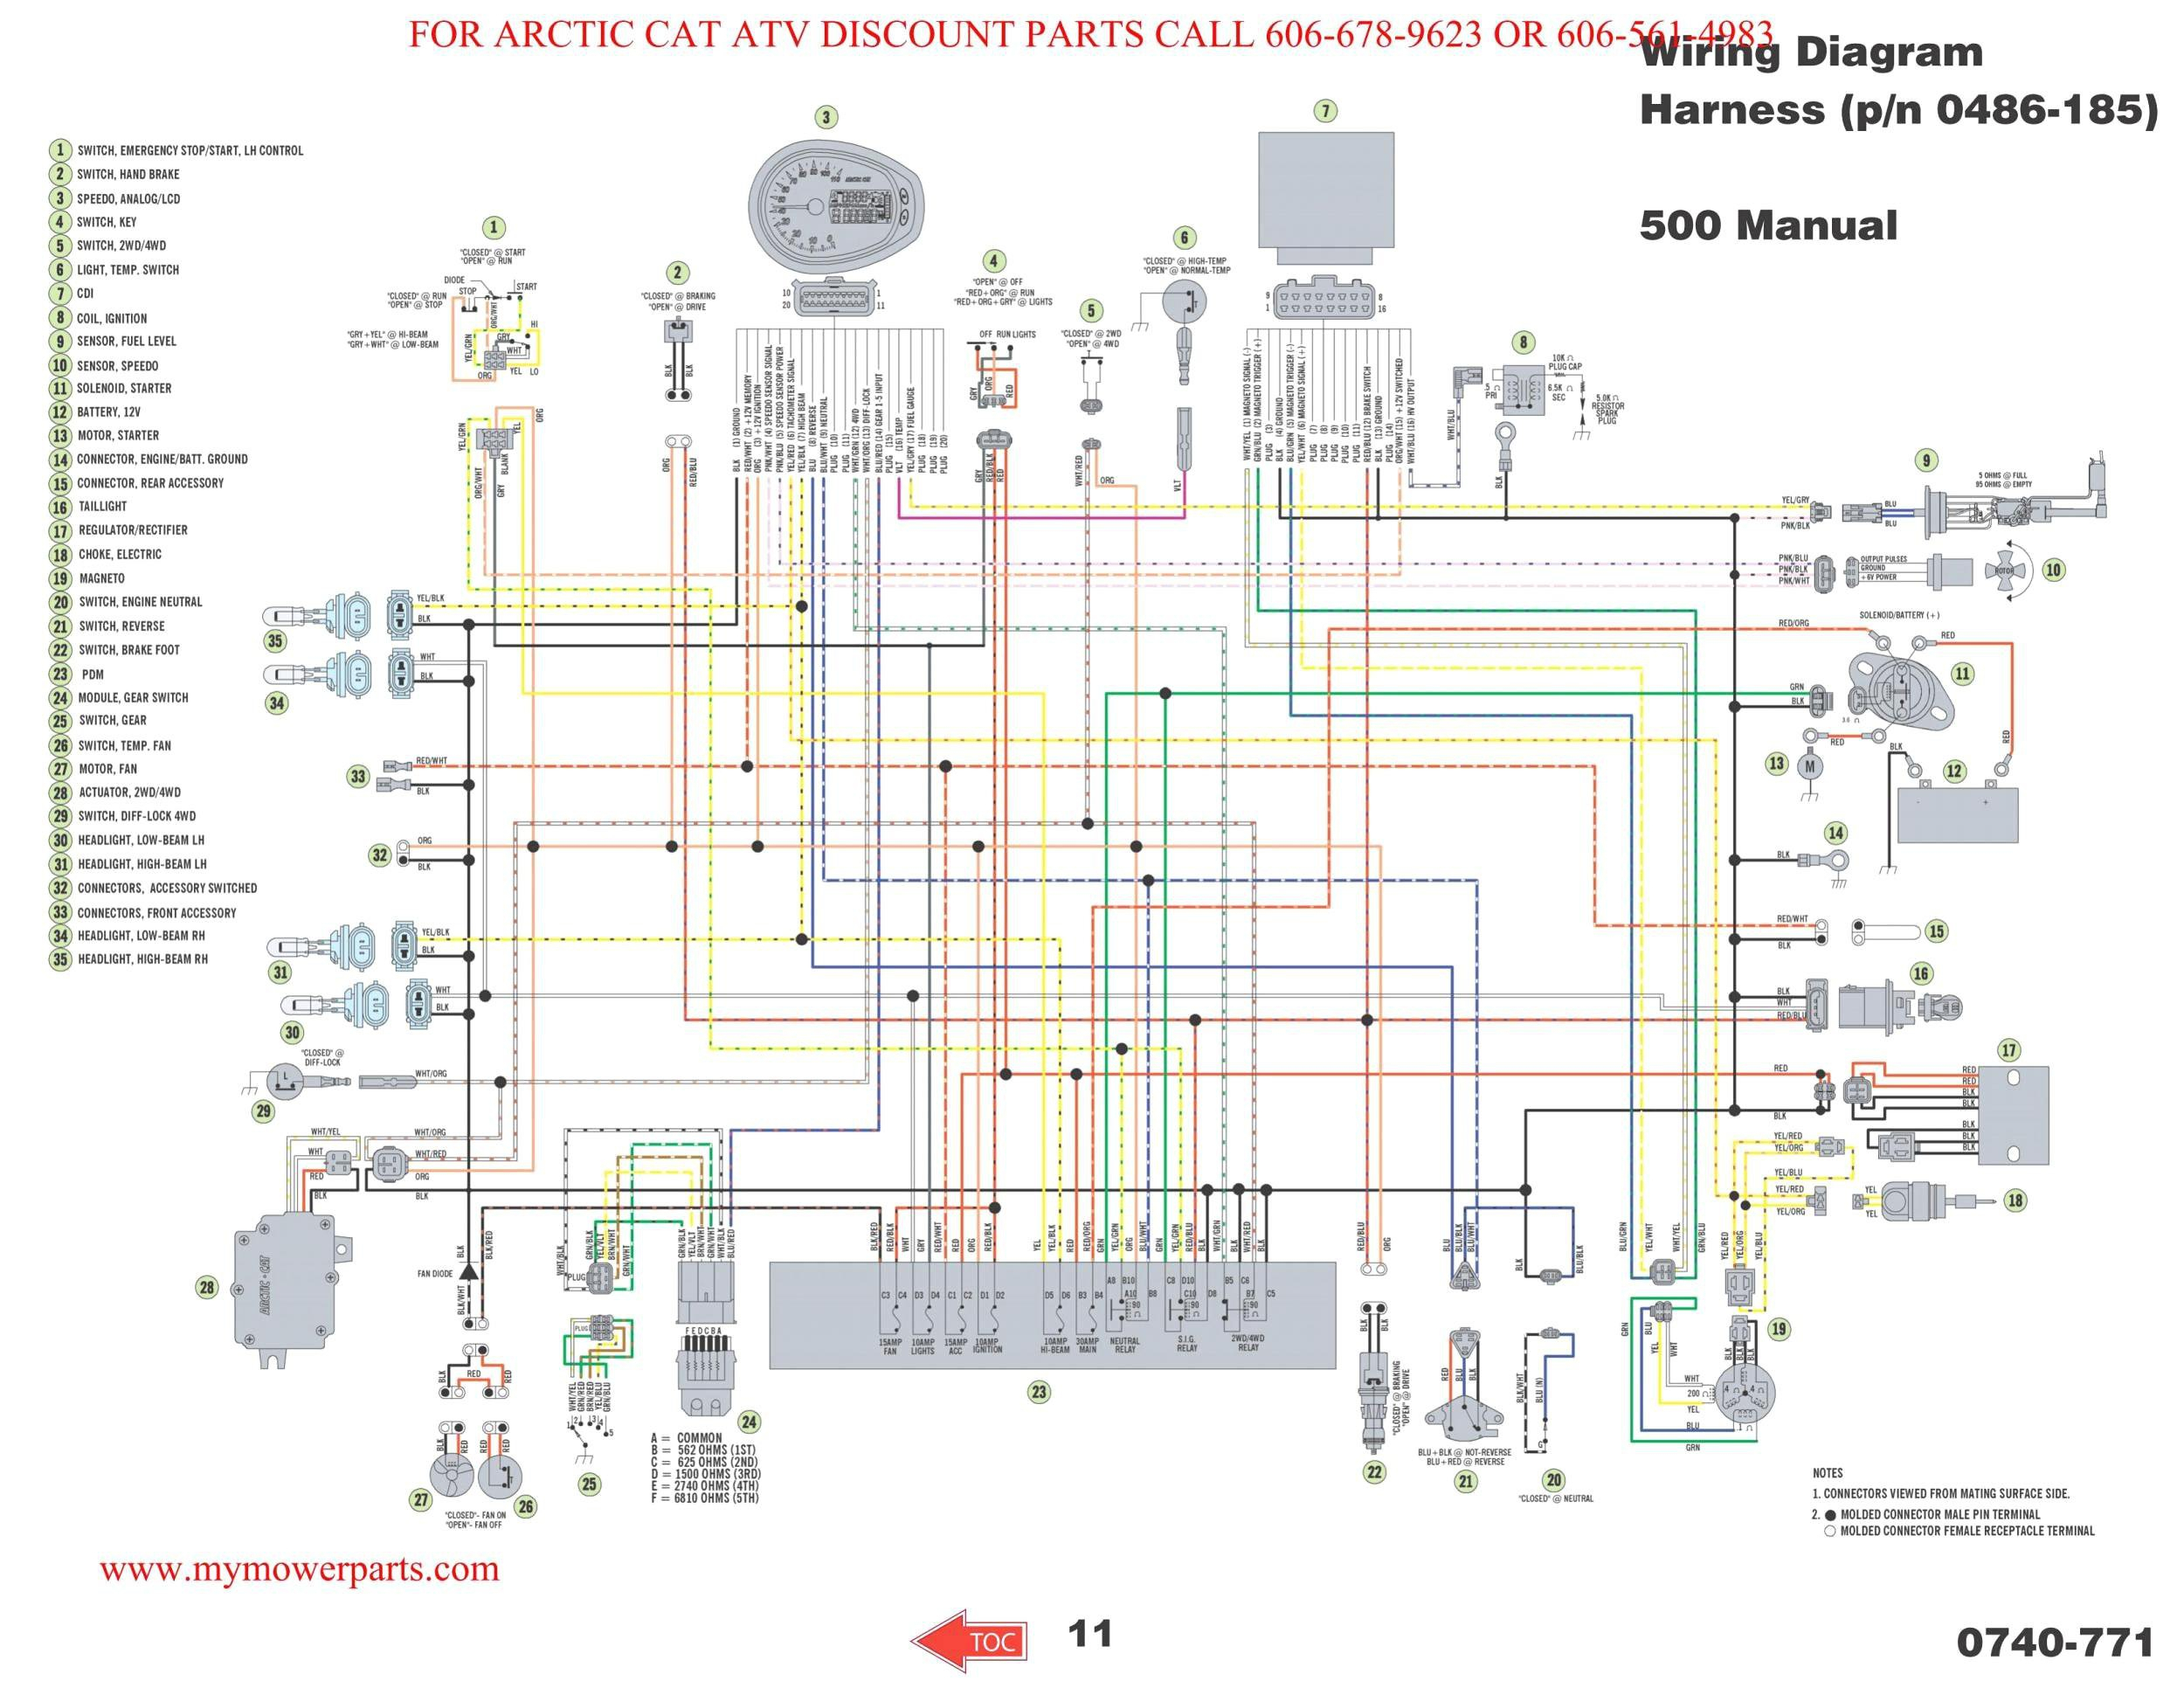 Polaris Scrambler 500 Front Wiring Diagram | Wiring ... on